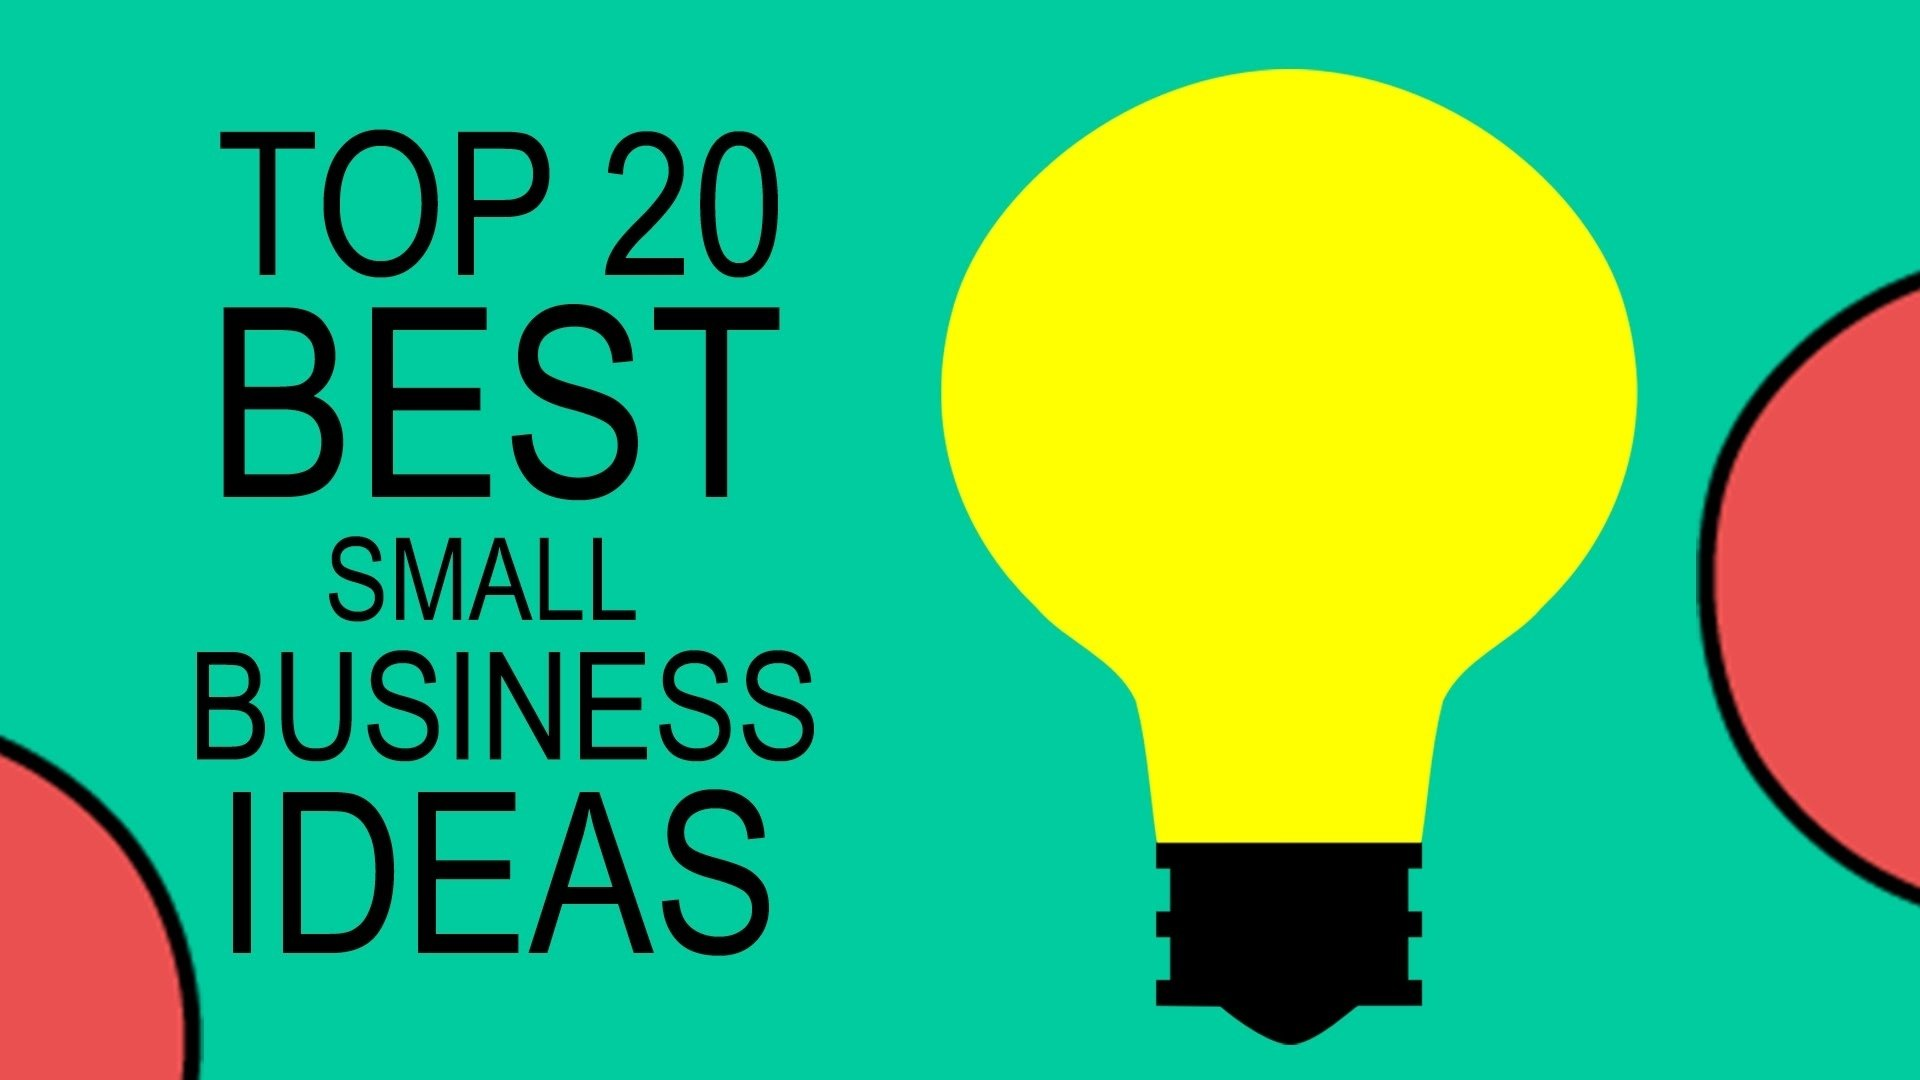 10 Cute Business Ideas For The Future top 20 best small business ideas for beginners in 2017 youtube 2 2020